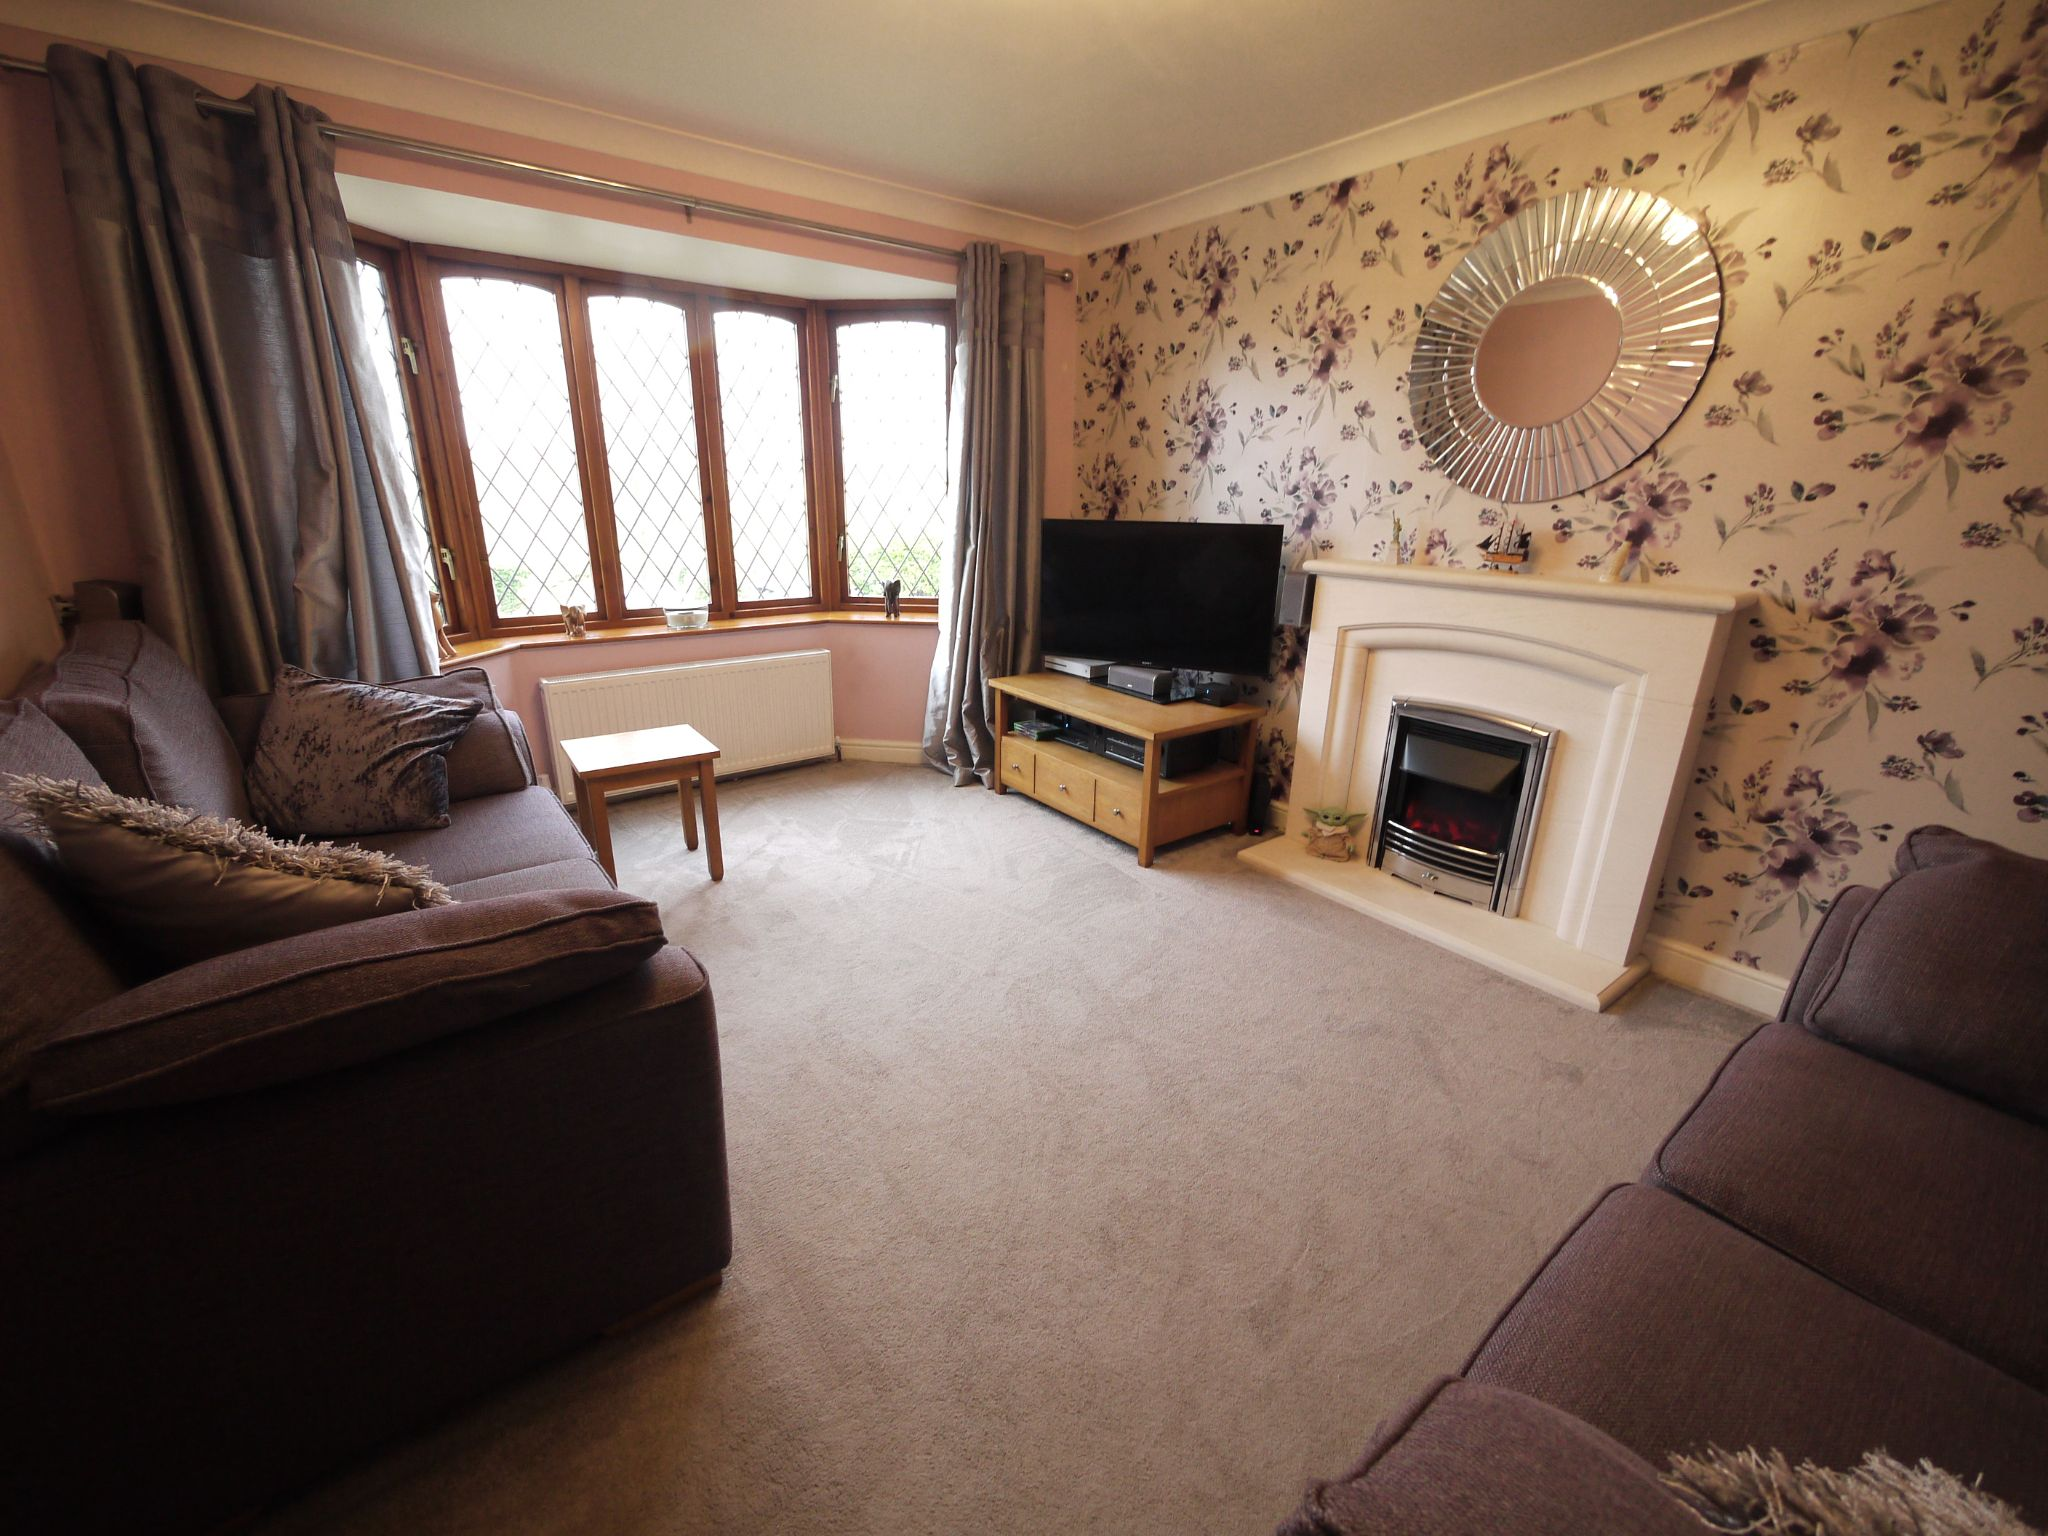 4 bedroom detached house SSTC in Brighouse - Lounge 1.